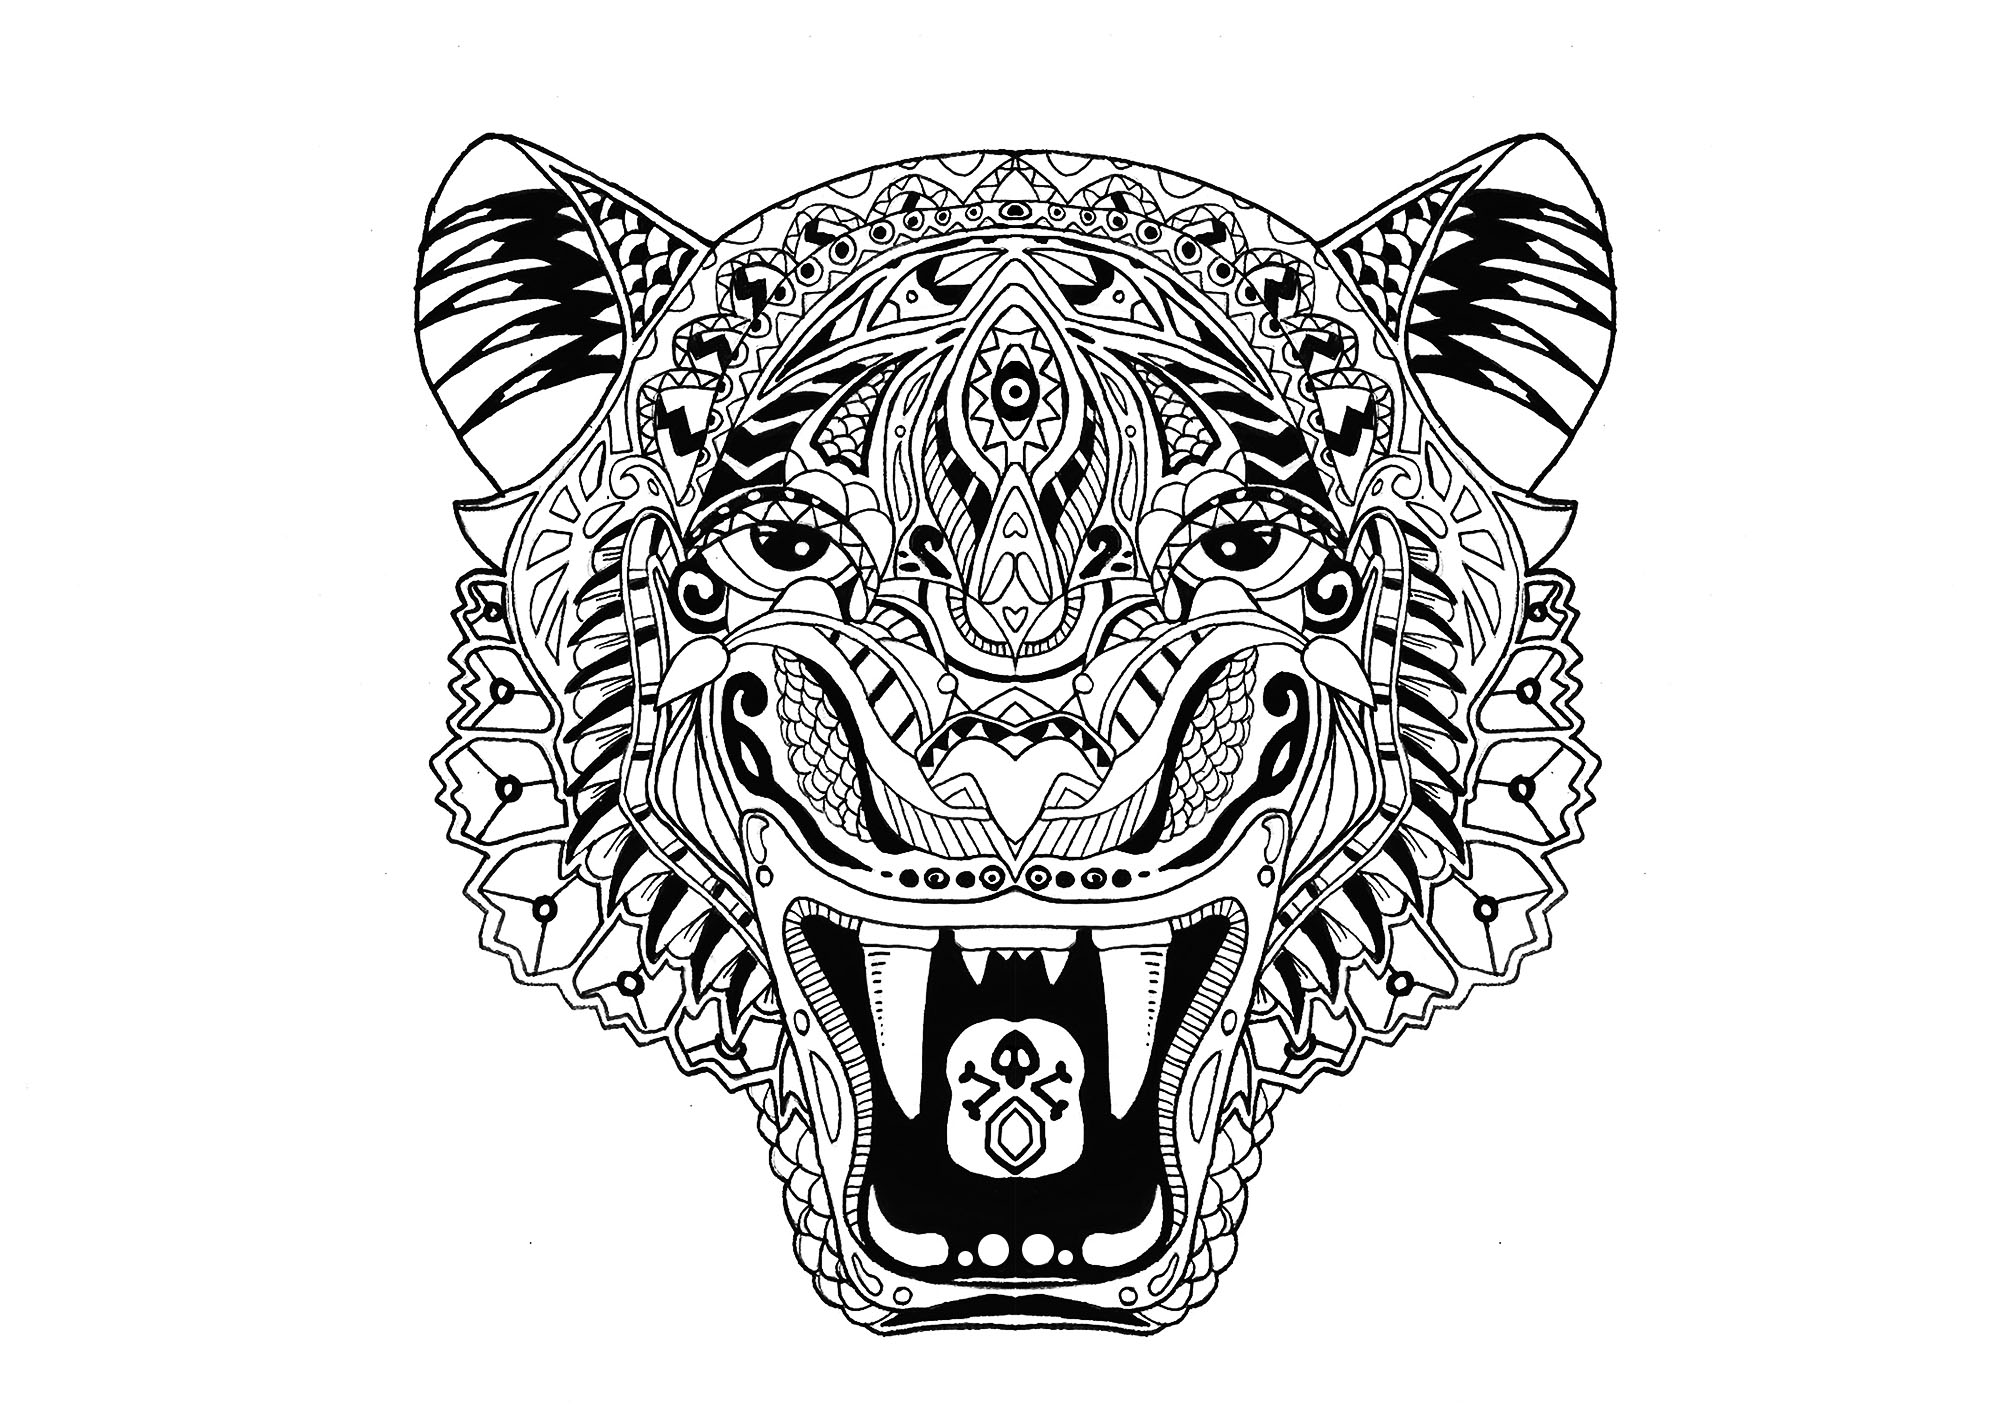 This tiger looks at you with his piercing eyesFrom the gallery : AnimalsArtist : Pauline